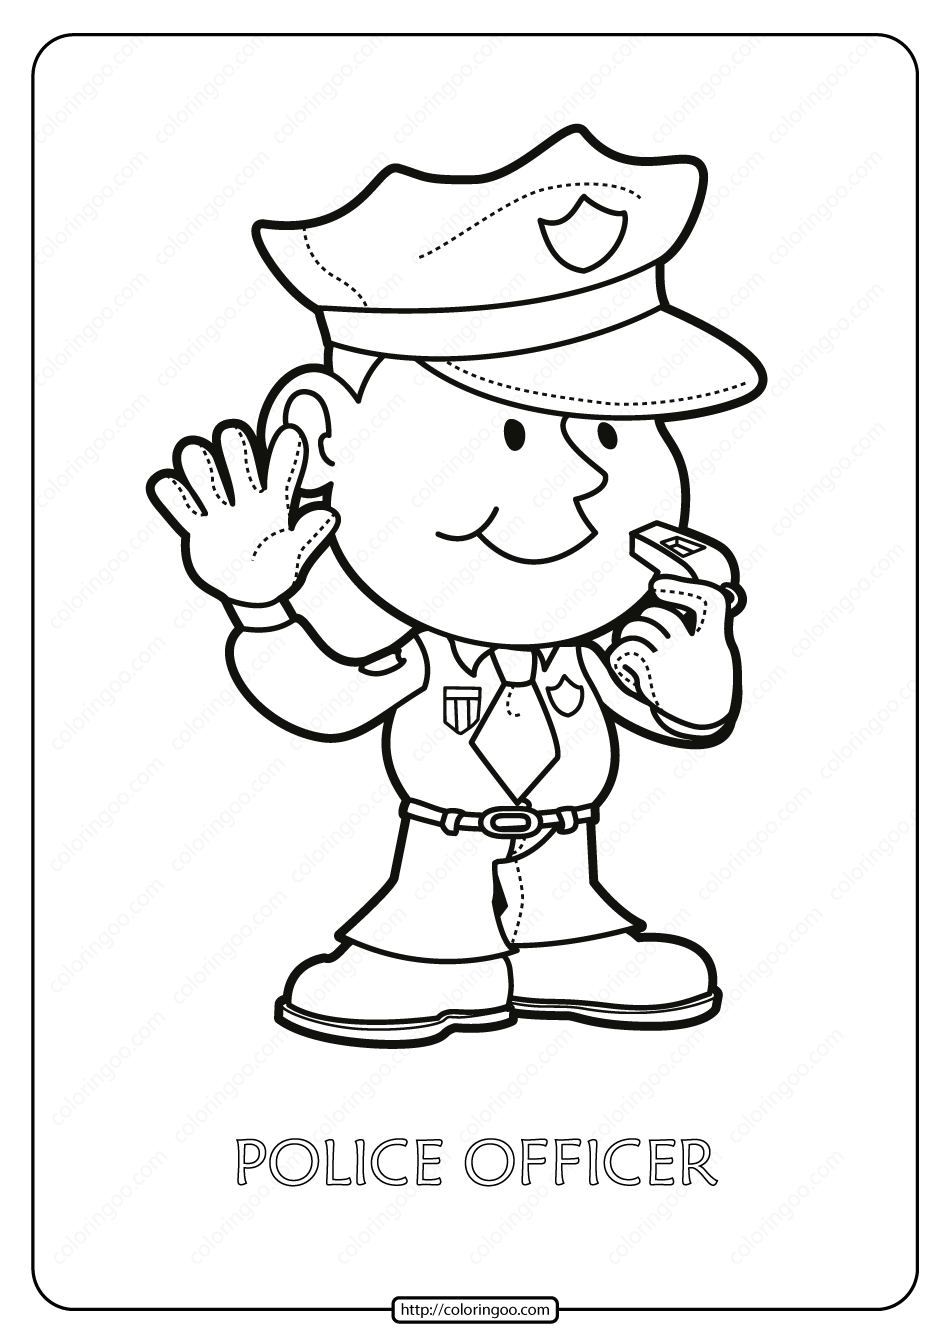 Printable Police Officer Pdf Coloring Page In 2020 Coloring Pages Police Officer Police